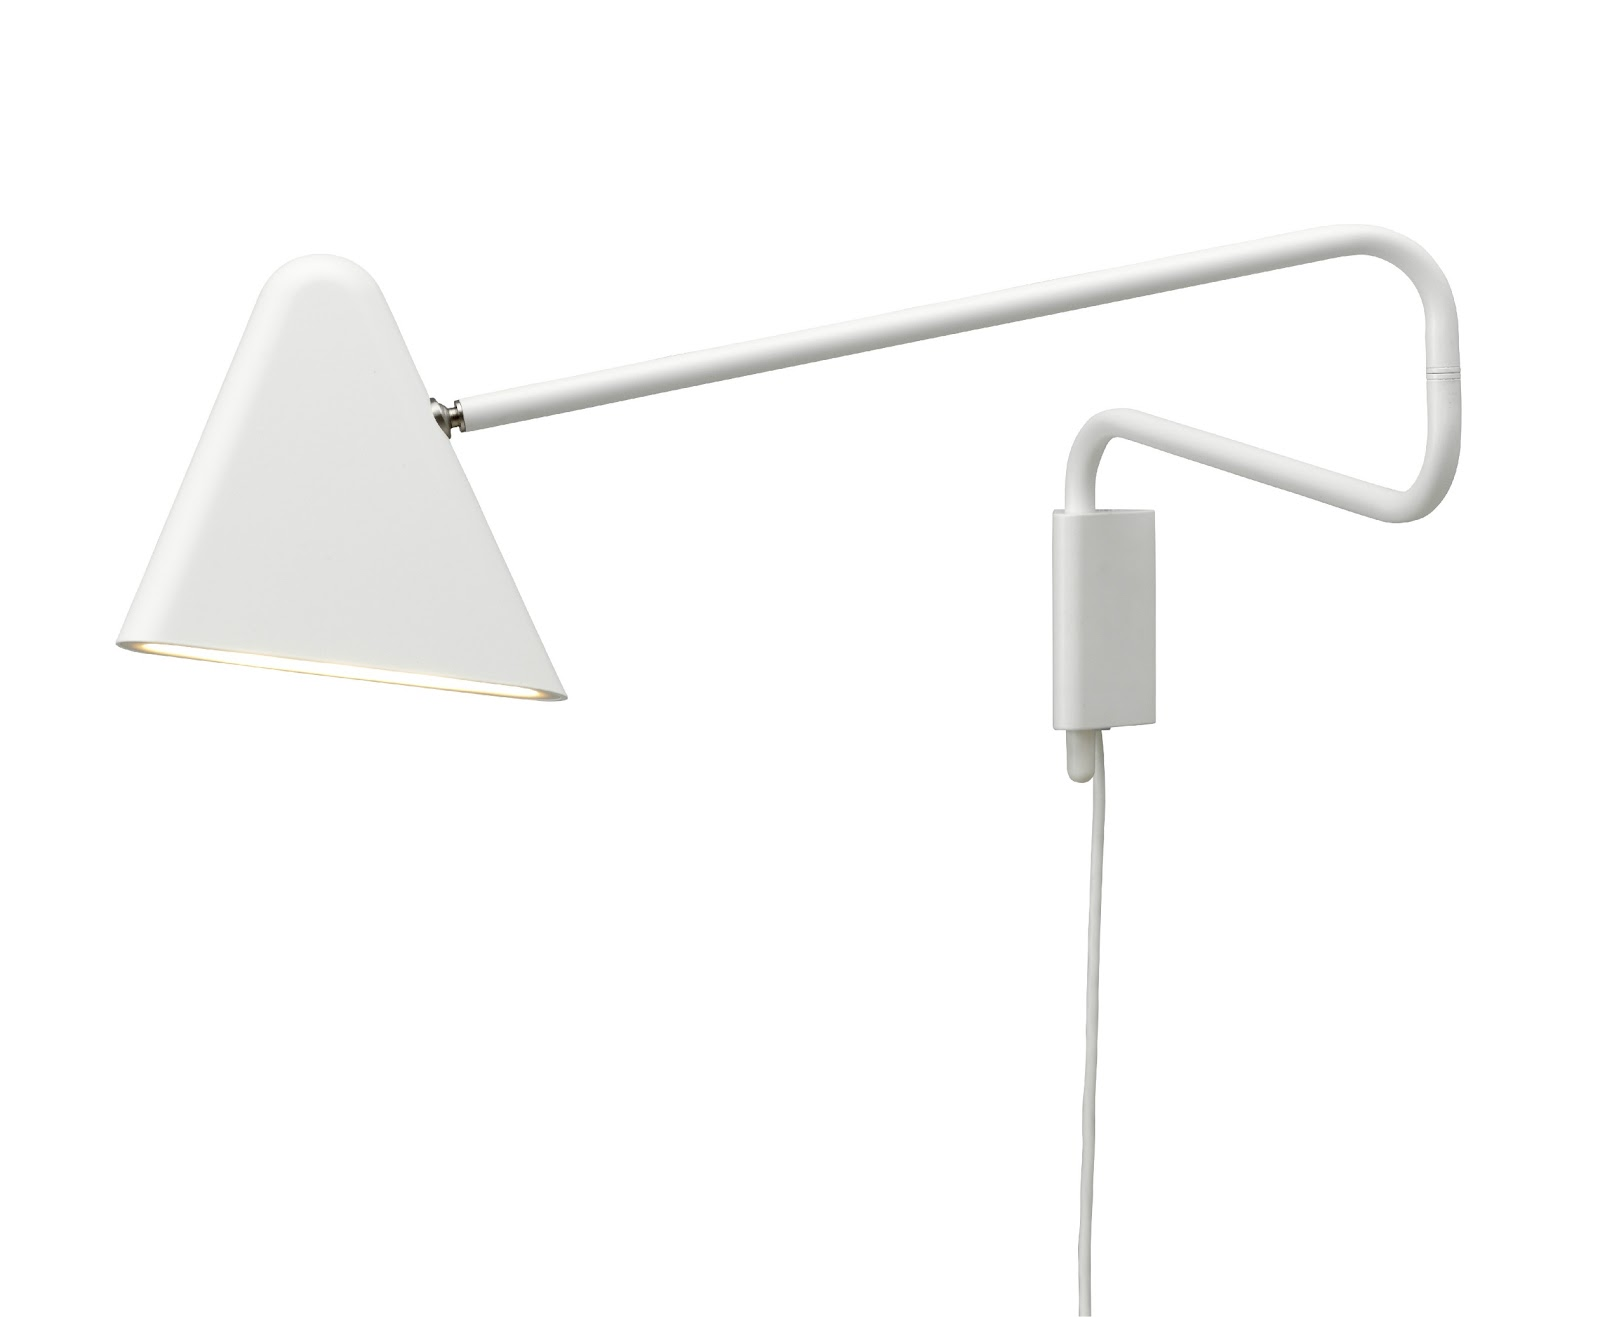 Ikea Ps Lamp Le Jardin De Juliette Ikea Ps 2012 Bis